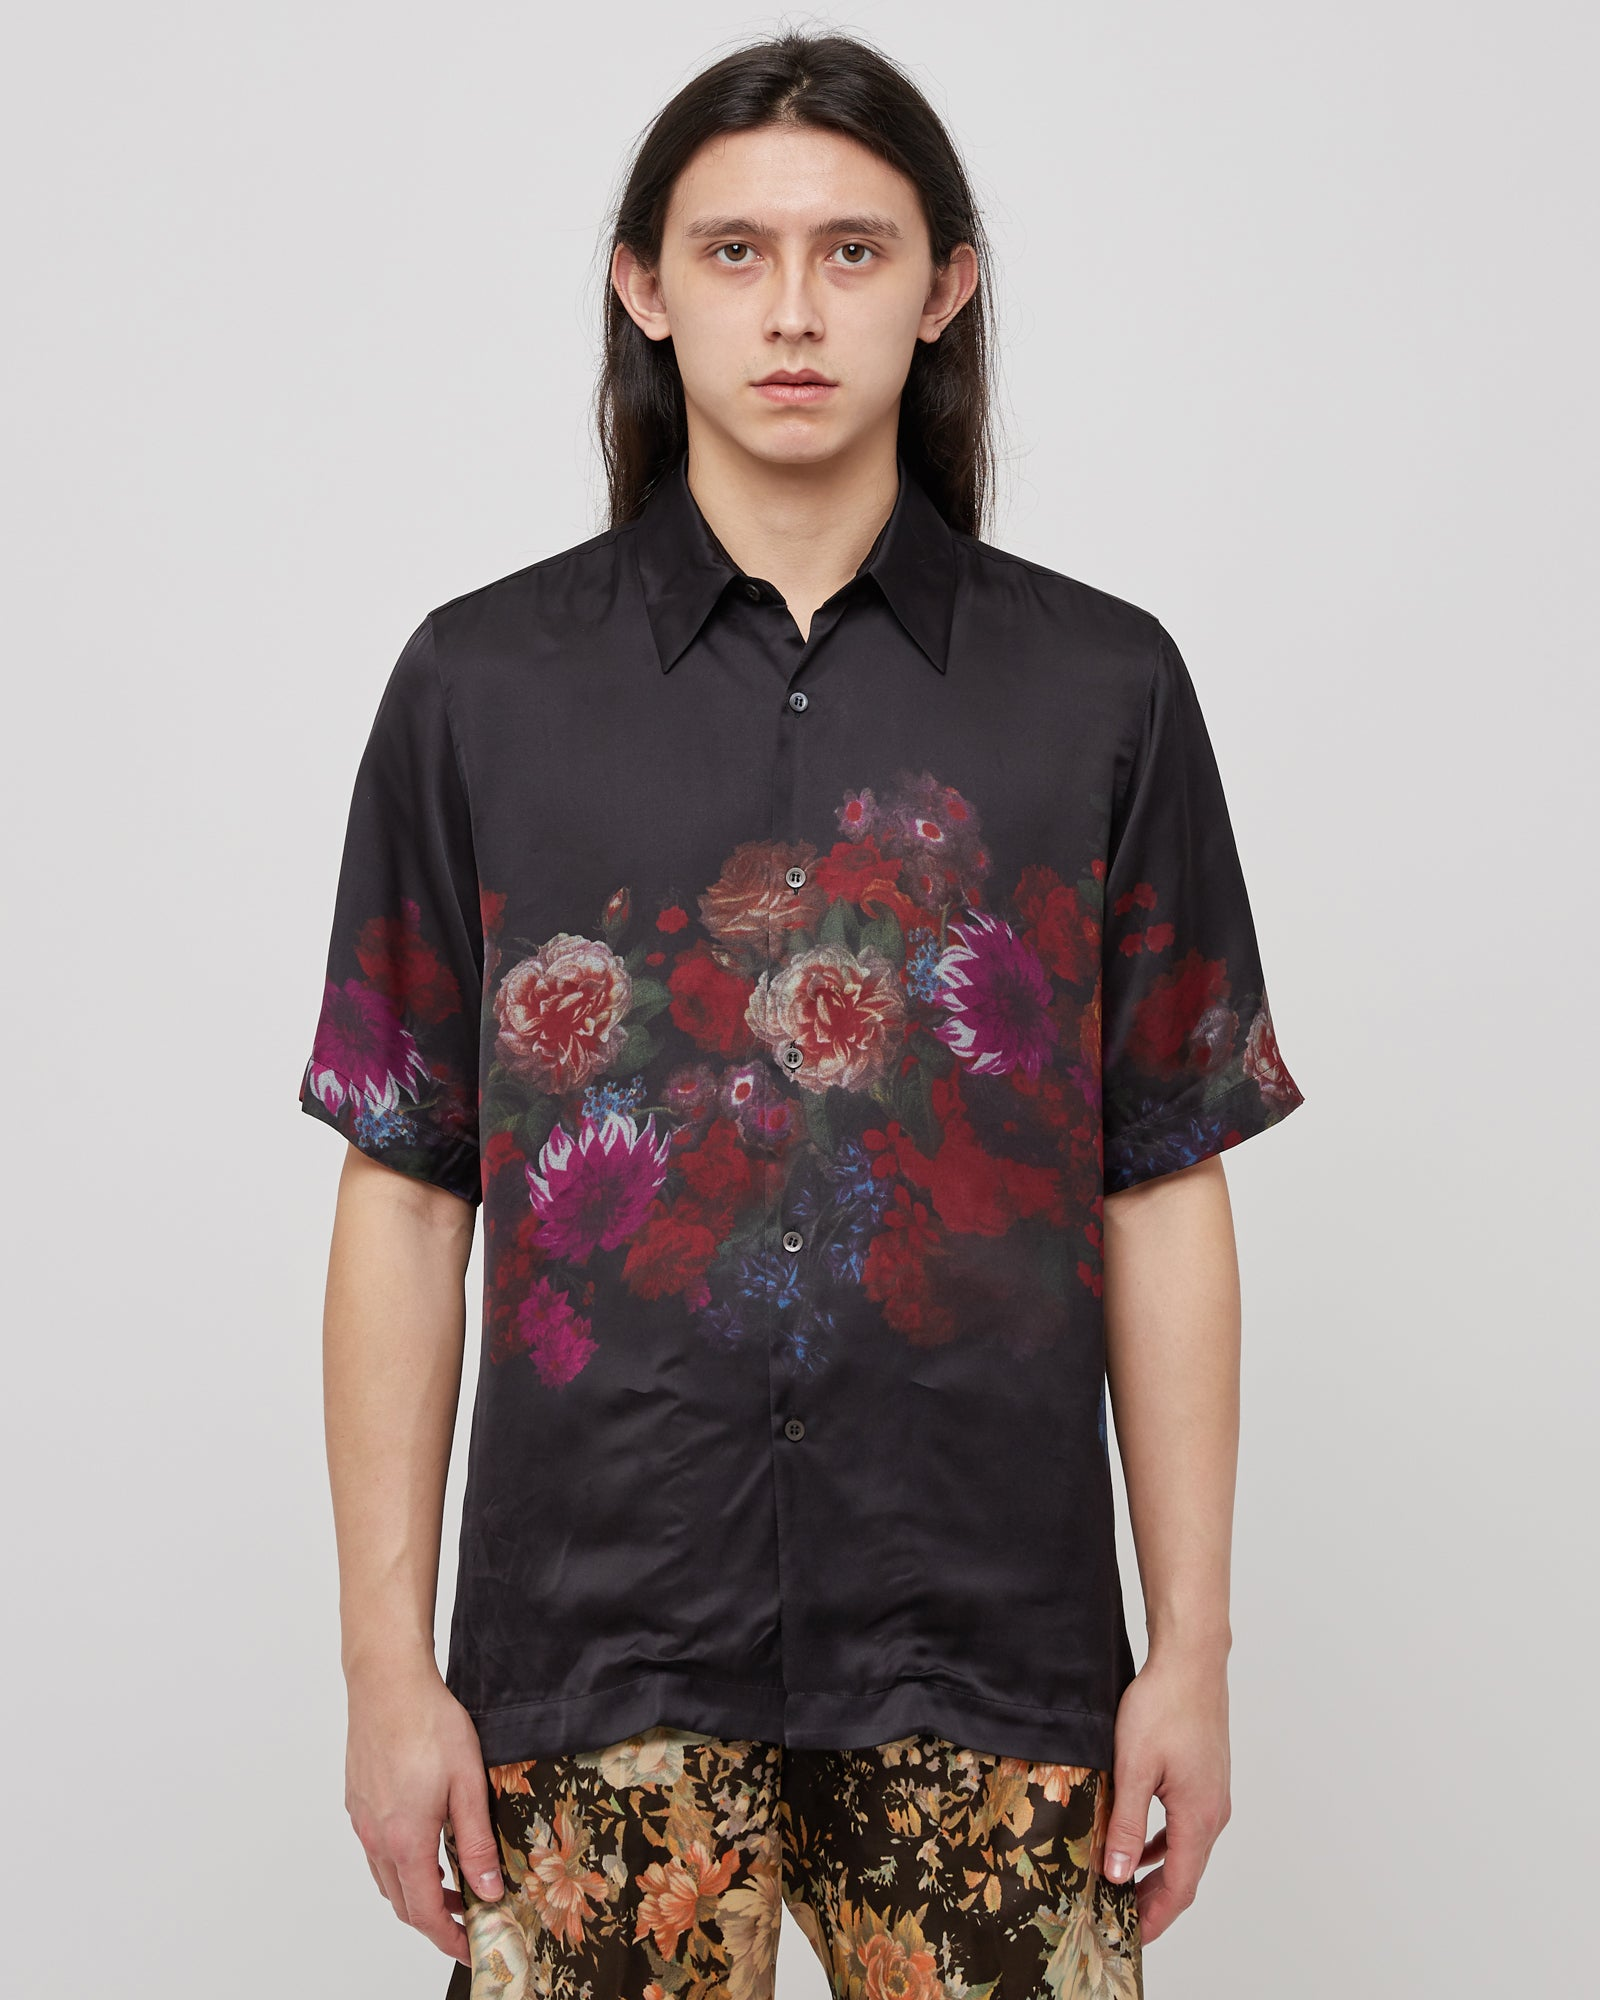 Clasen Floral Shirt in Black